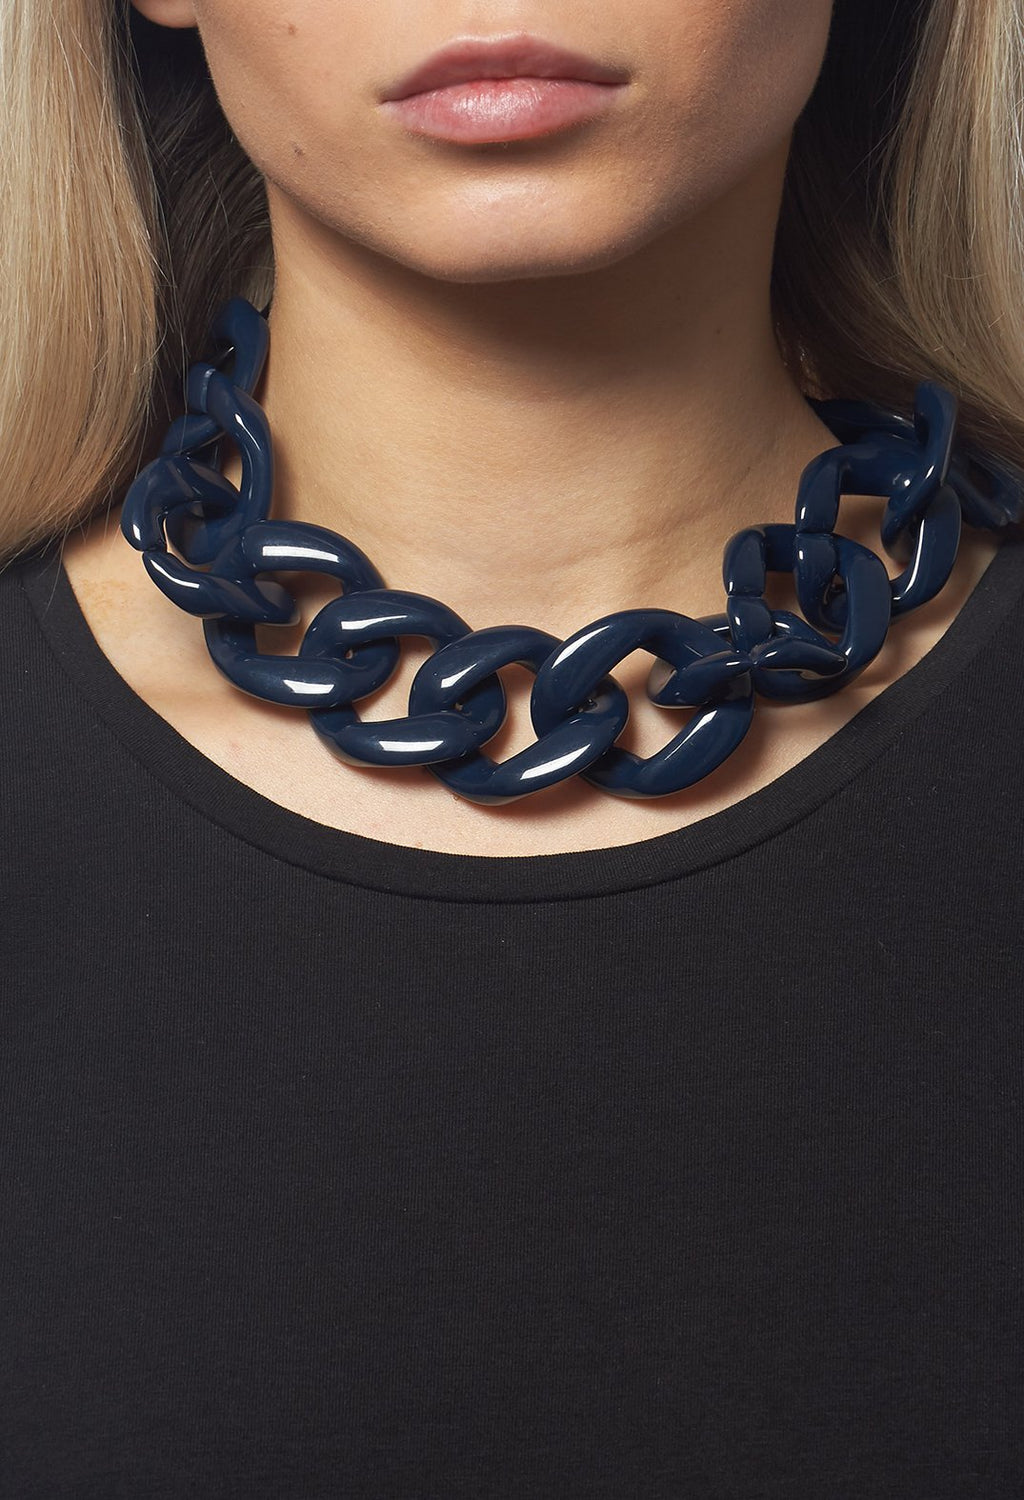 Chain Necklace in Navy / Black